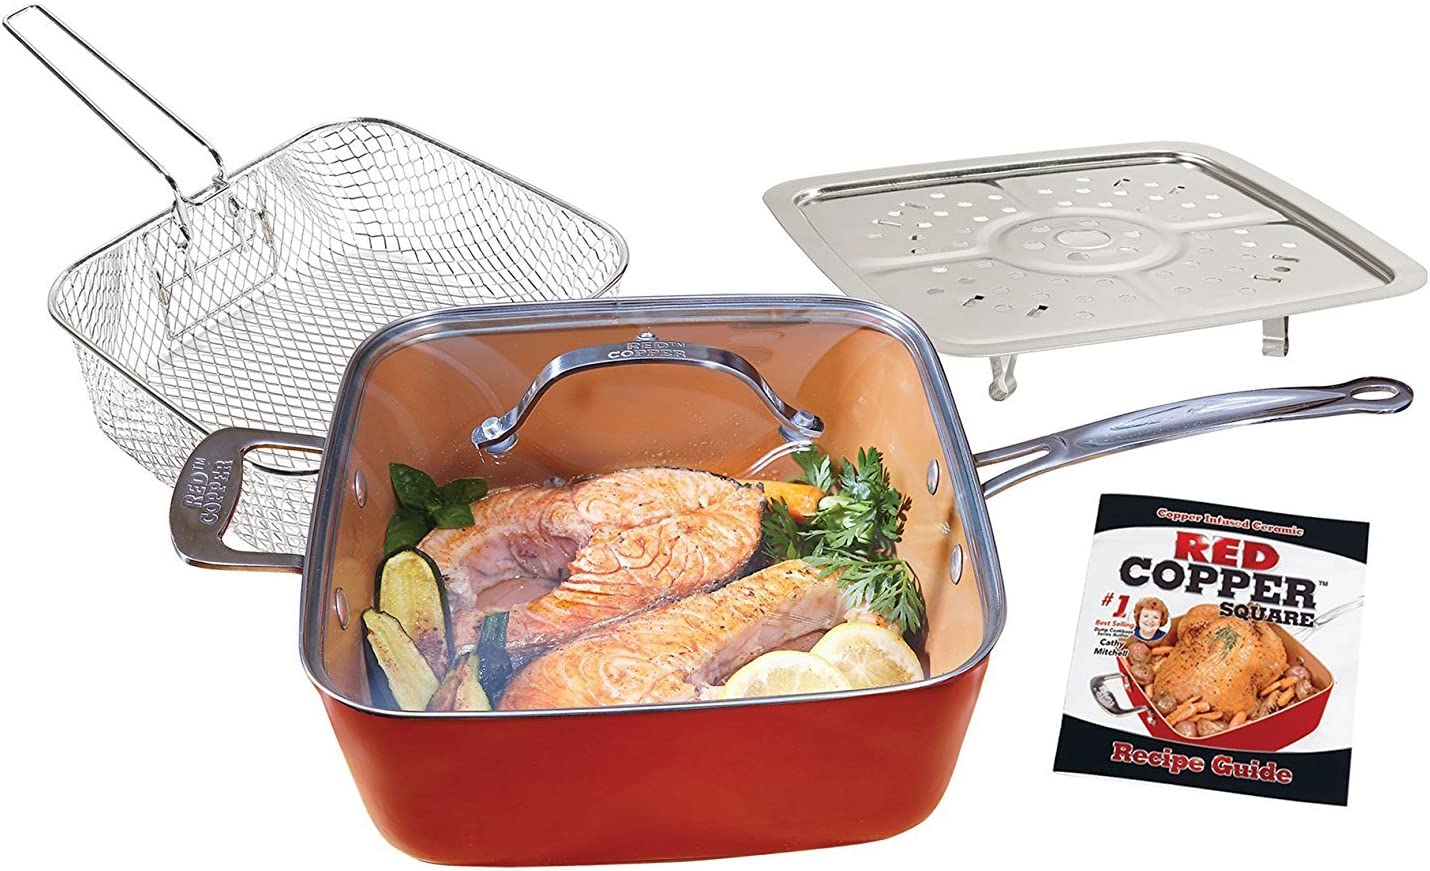 Red Copper 10-Inch Square Pan Set - 5 pc : Red copper pan seasoning instructions